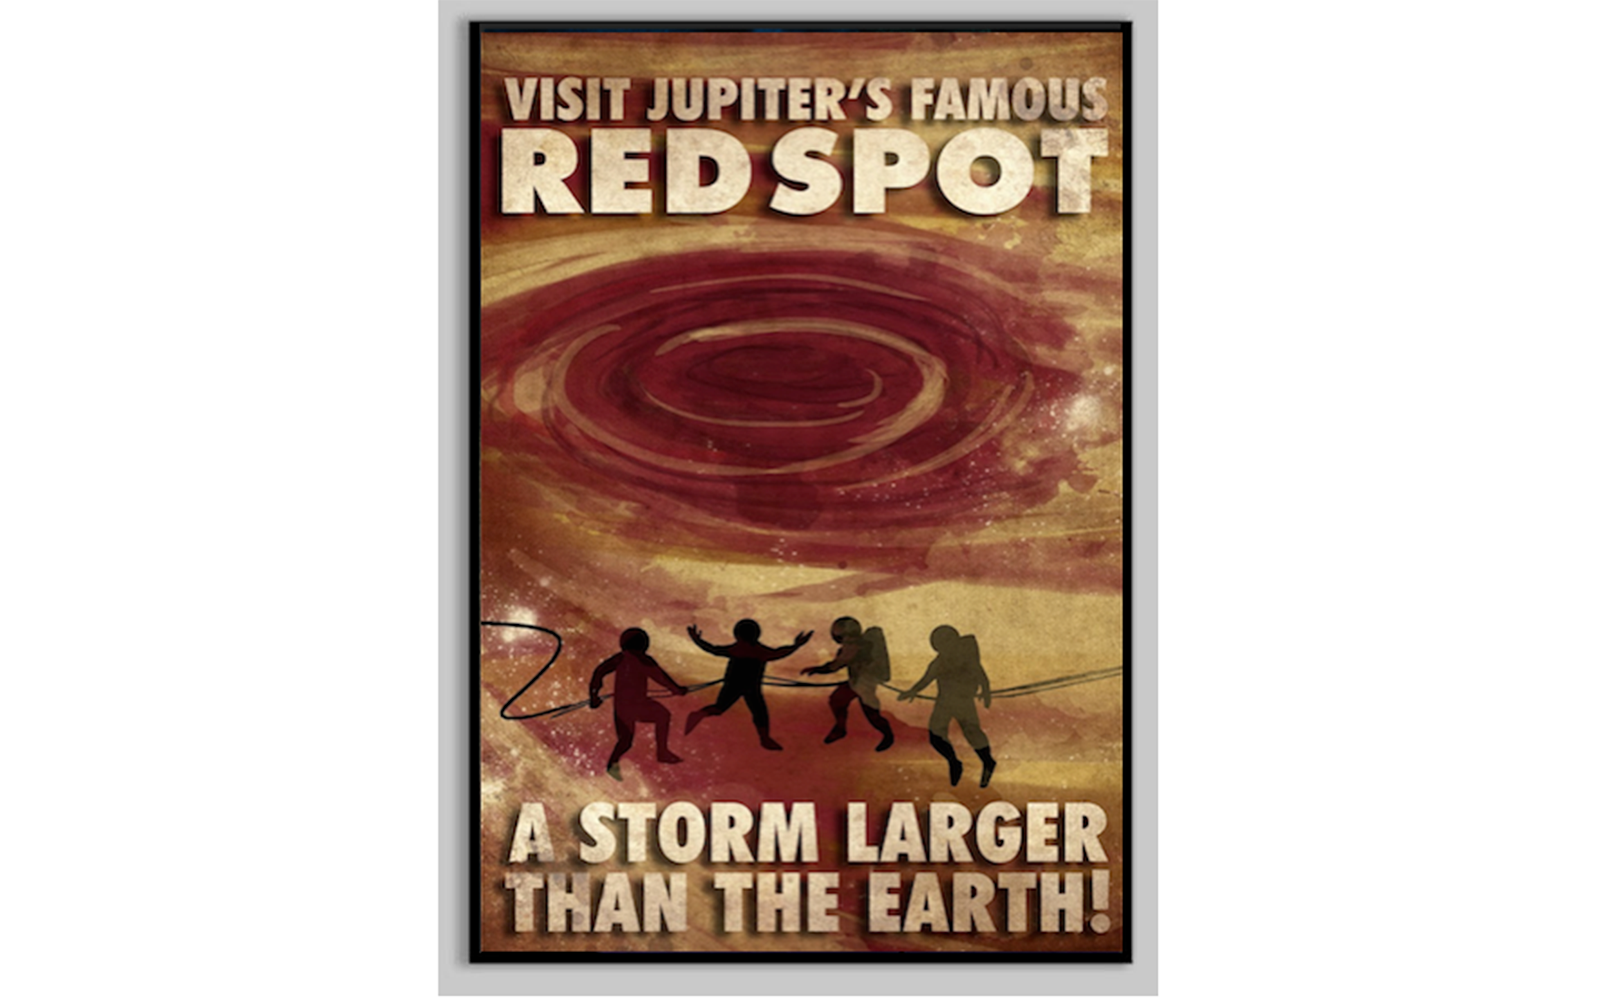 Vintage Space Travel Posters: Extreme Storm Chasing: Jupiter's Red Spot